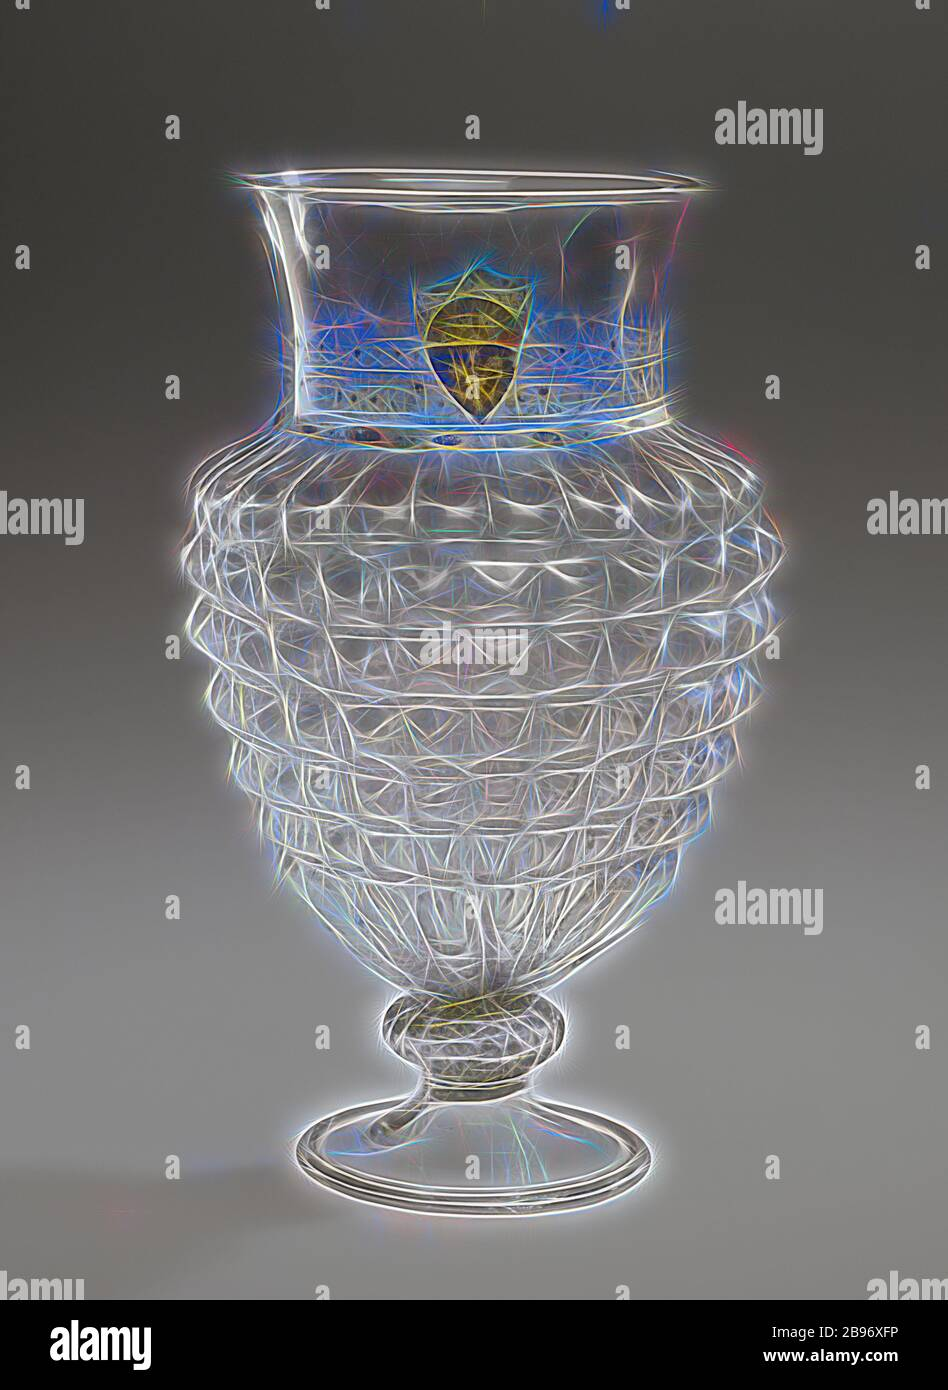 Football Trophy Award glass ball dans 3 Sizes Free ENGRAVING Up to 30 Letters